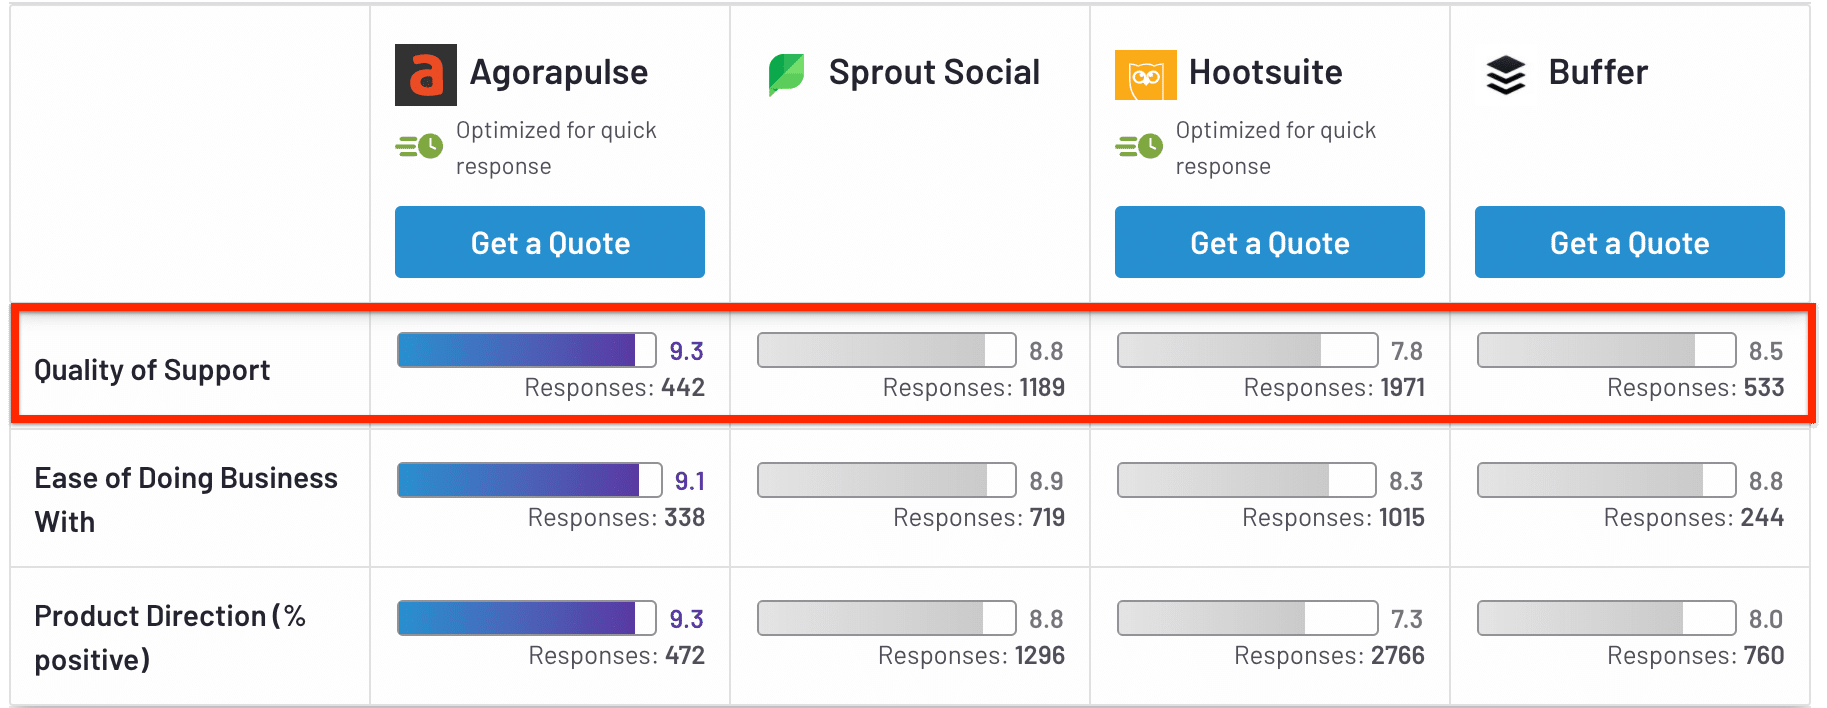 Hootsuite ranks the lowest in Quality of Support compared to Agorapulse and others.